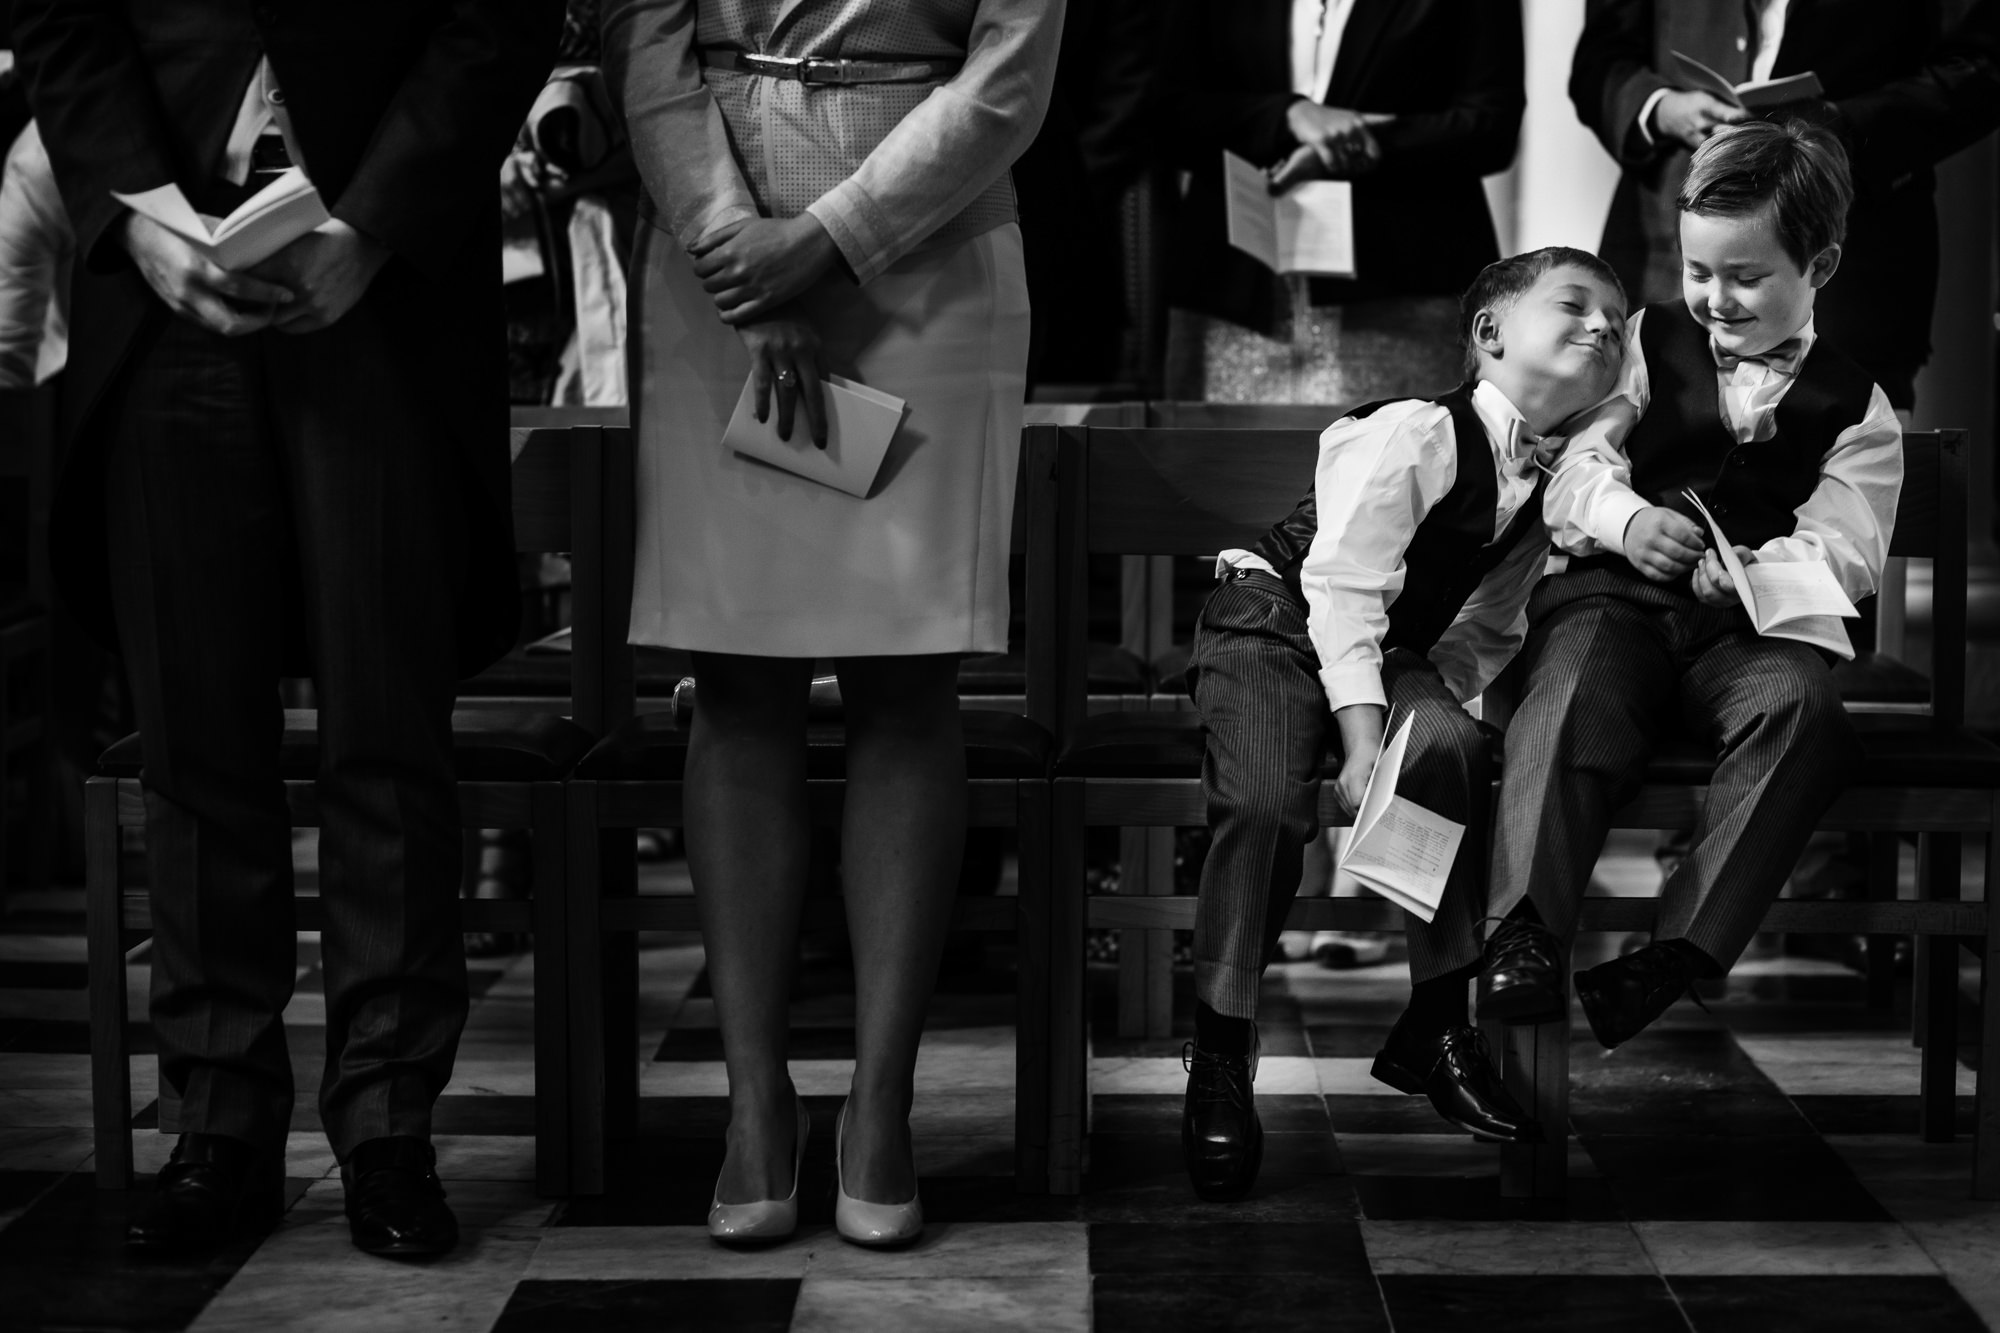 Little boy cuddles up to brother at wedding - photo by Yves Schepers